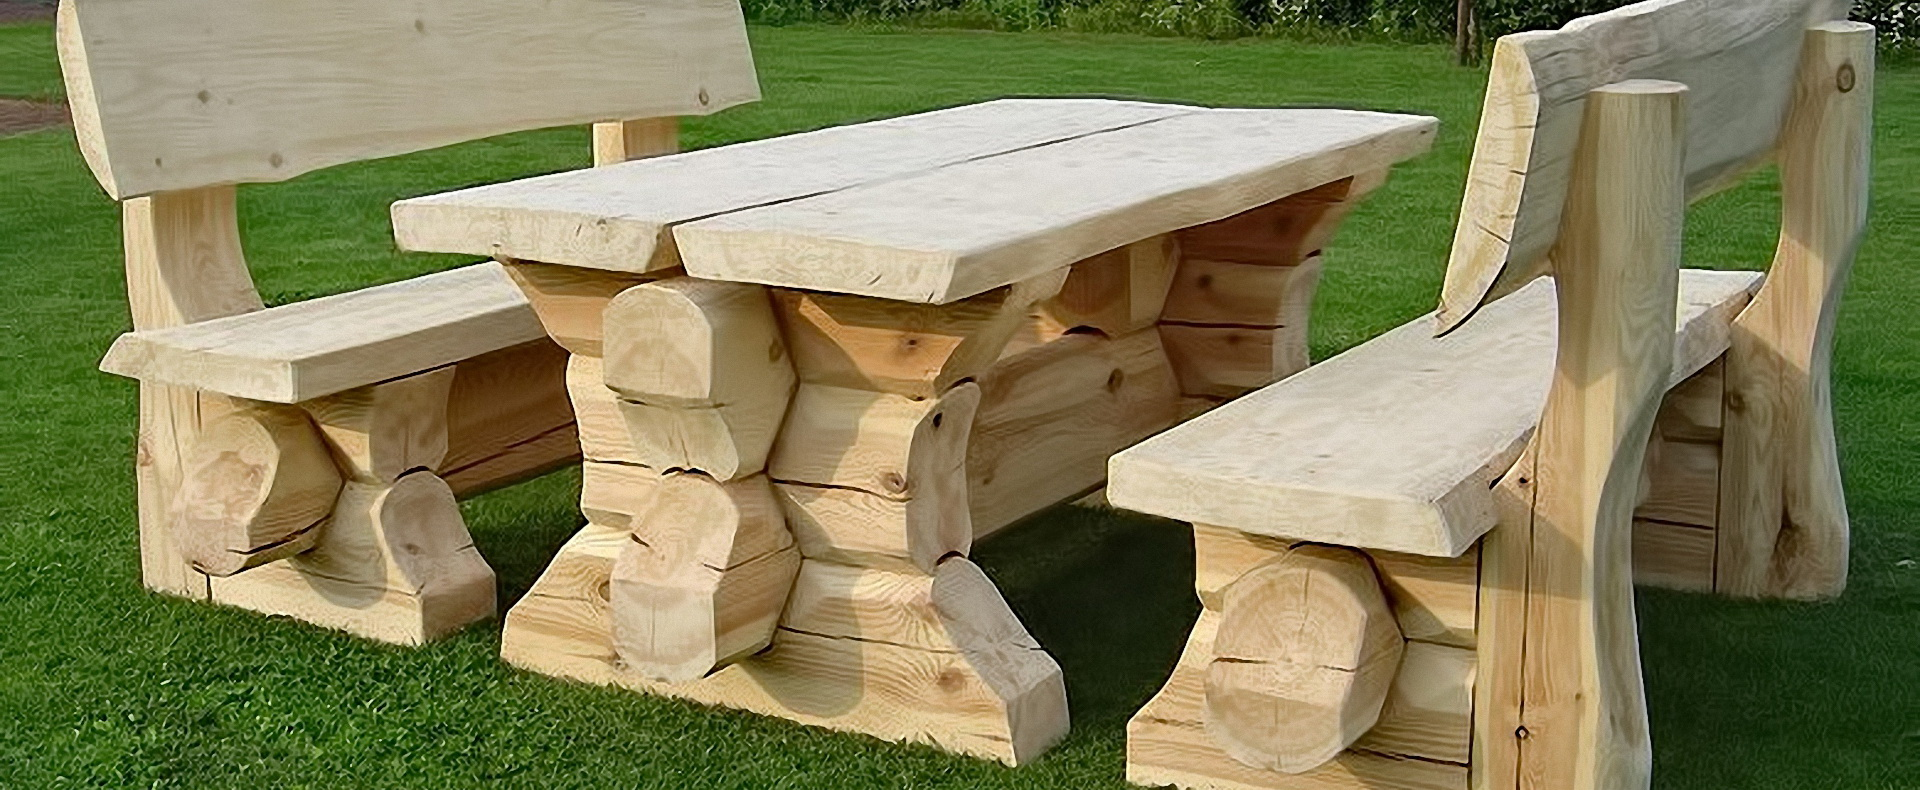 GARDEN FURNITURE   ROUNDWOOD AND SOLID WOOD